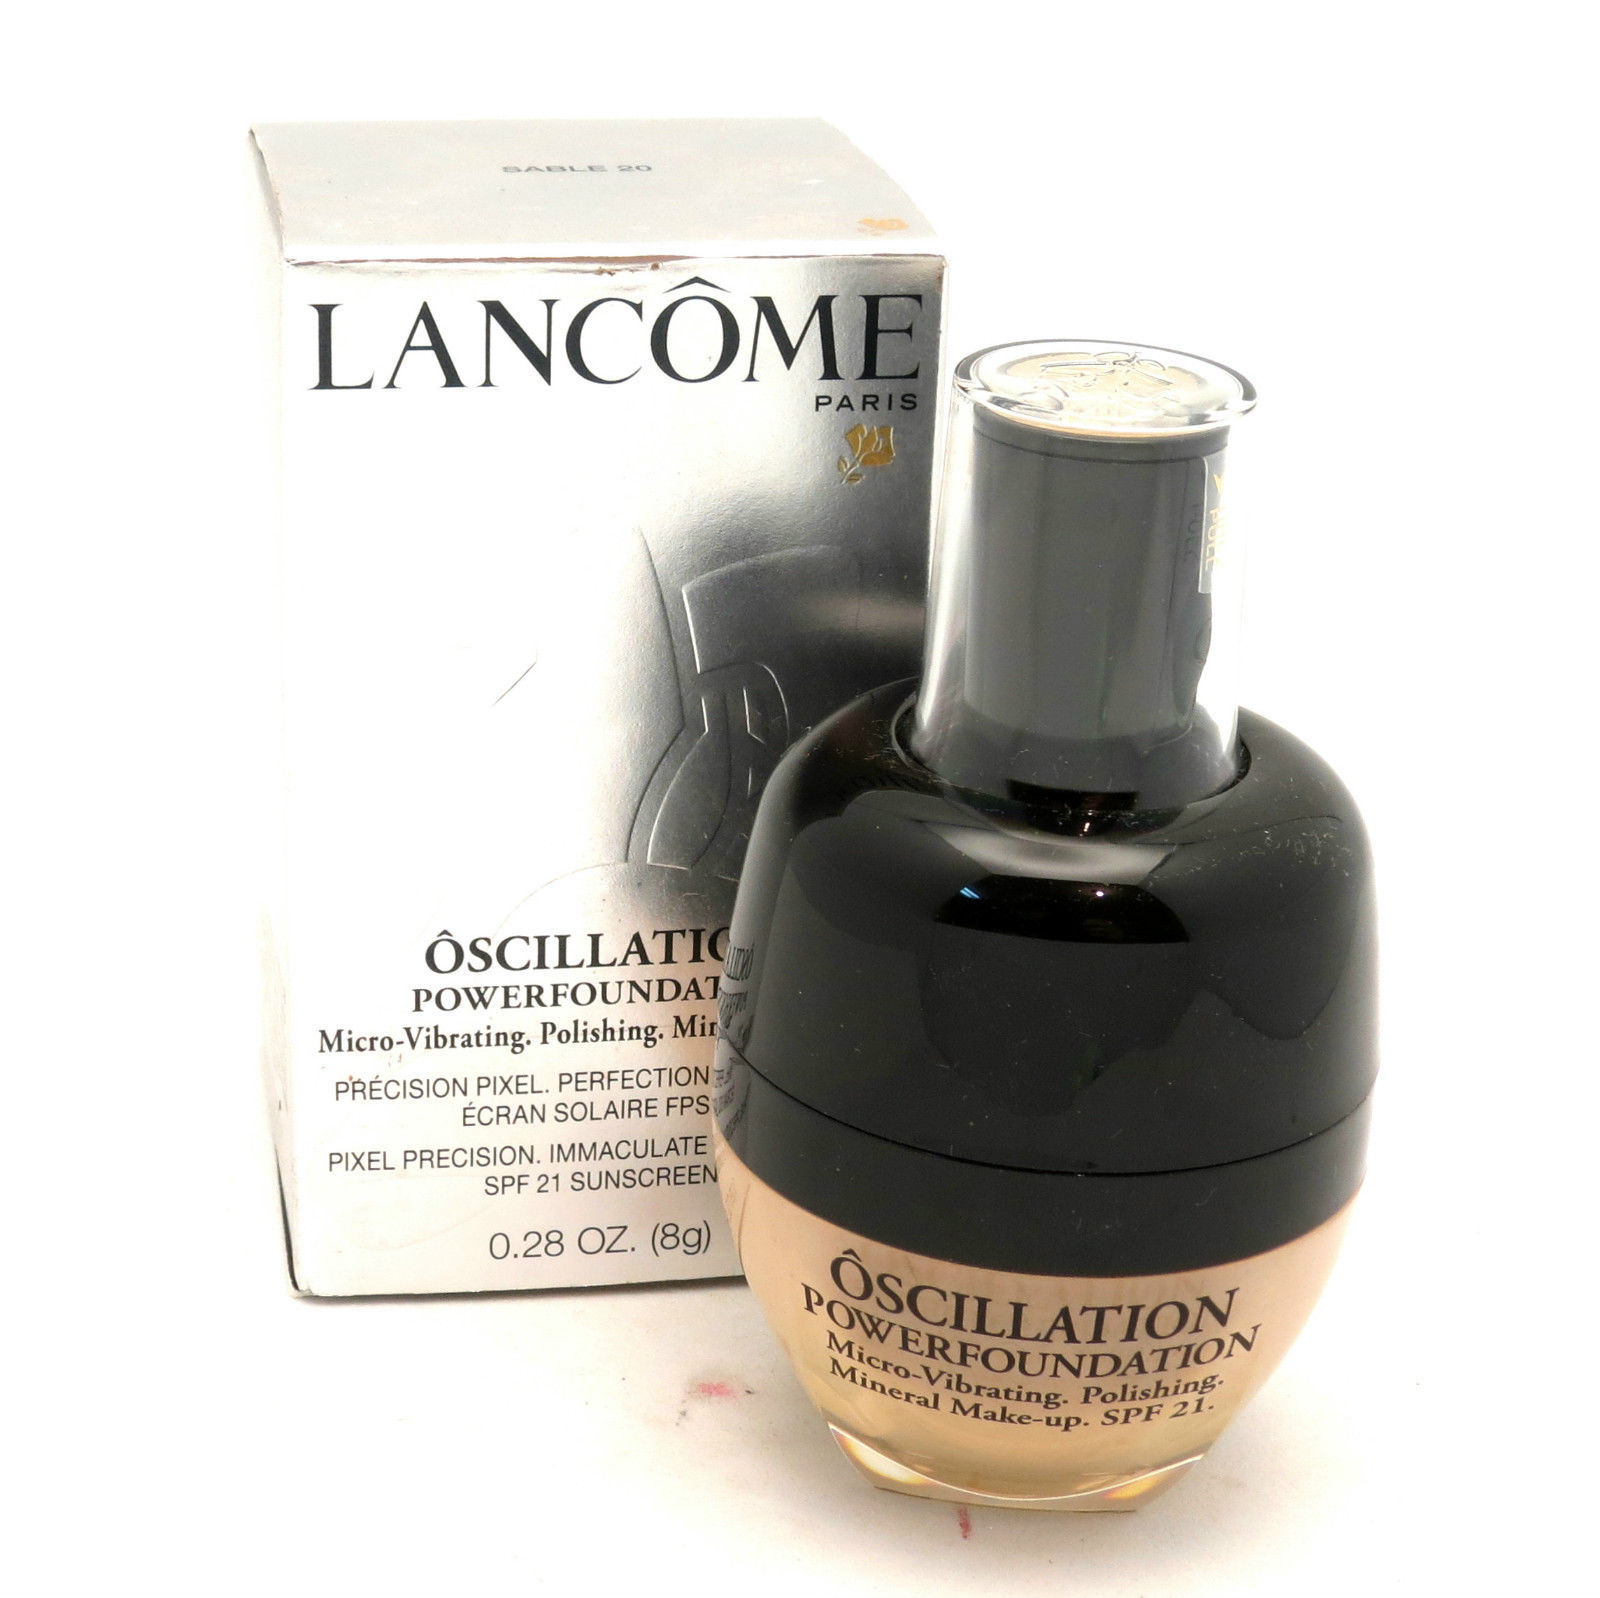 Lancome Oscillation Powerfoundation Mineral Makeup Spf15